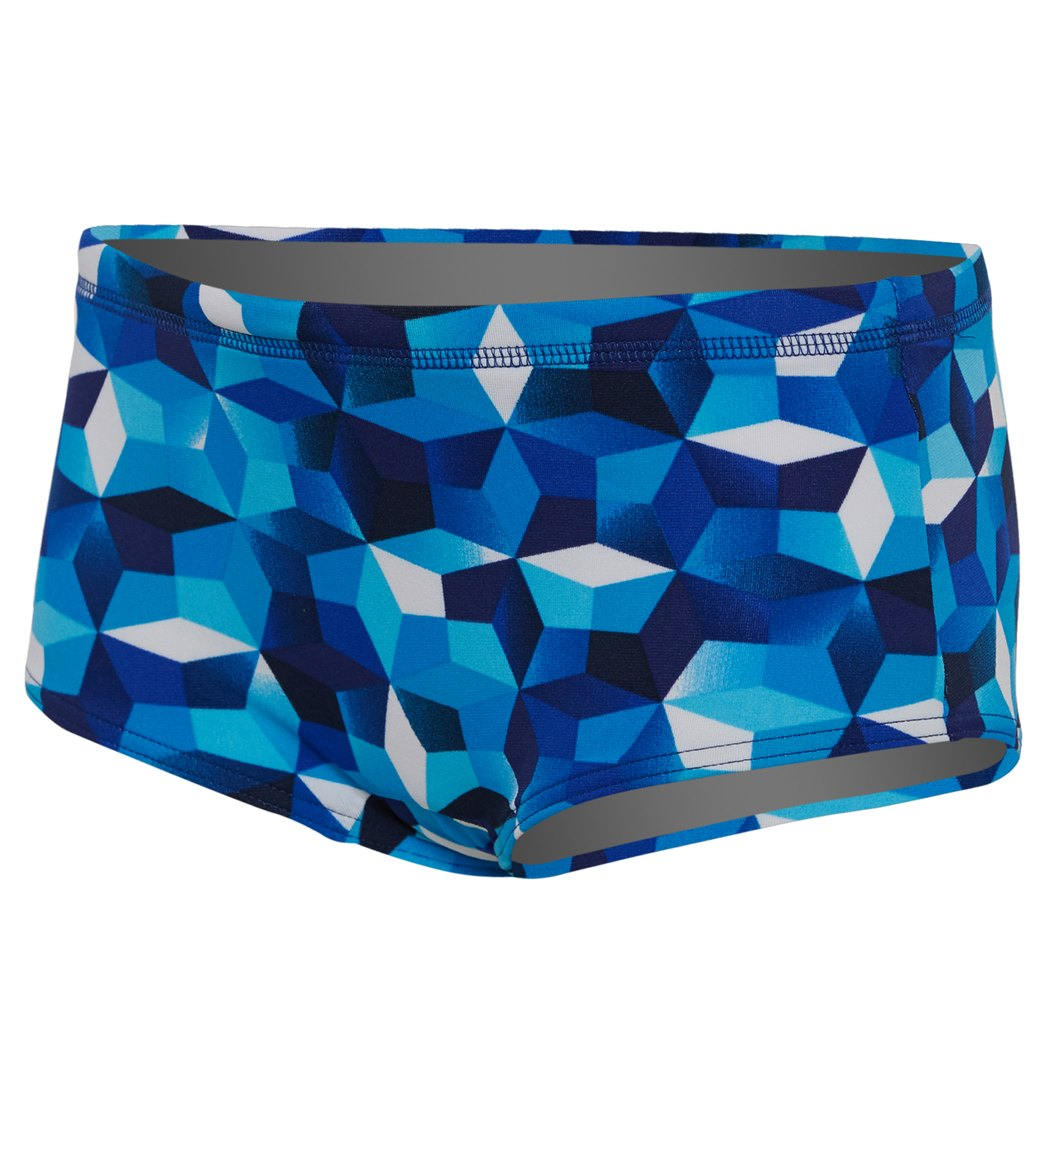 5c951c7c51 Funky Trunks Toddler Boys' Ice Fortress Trunk Swimsuit at SwimOutlet.com